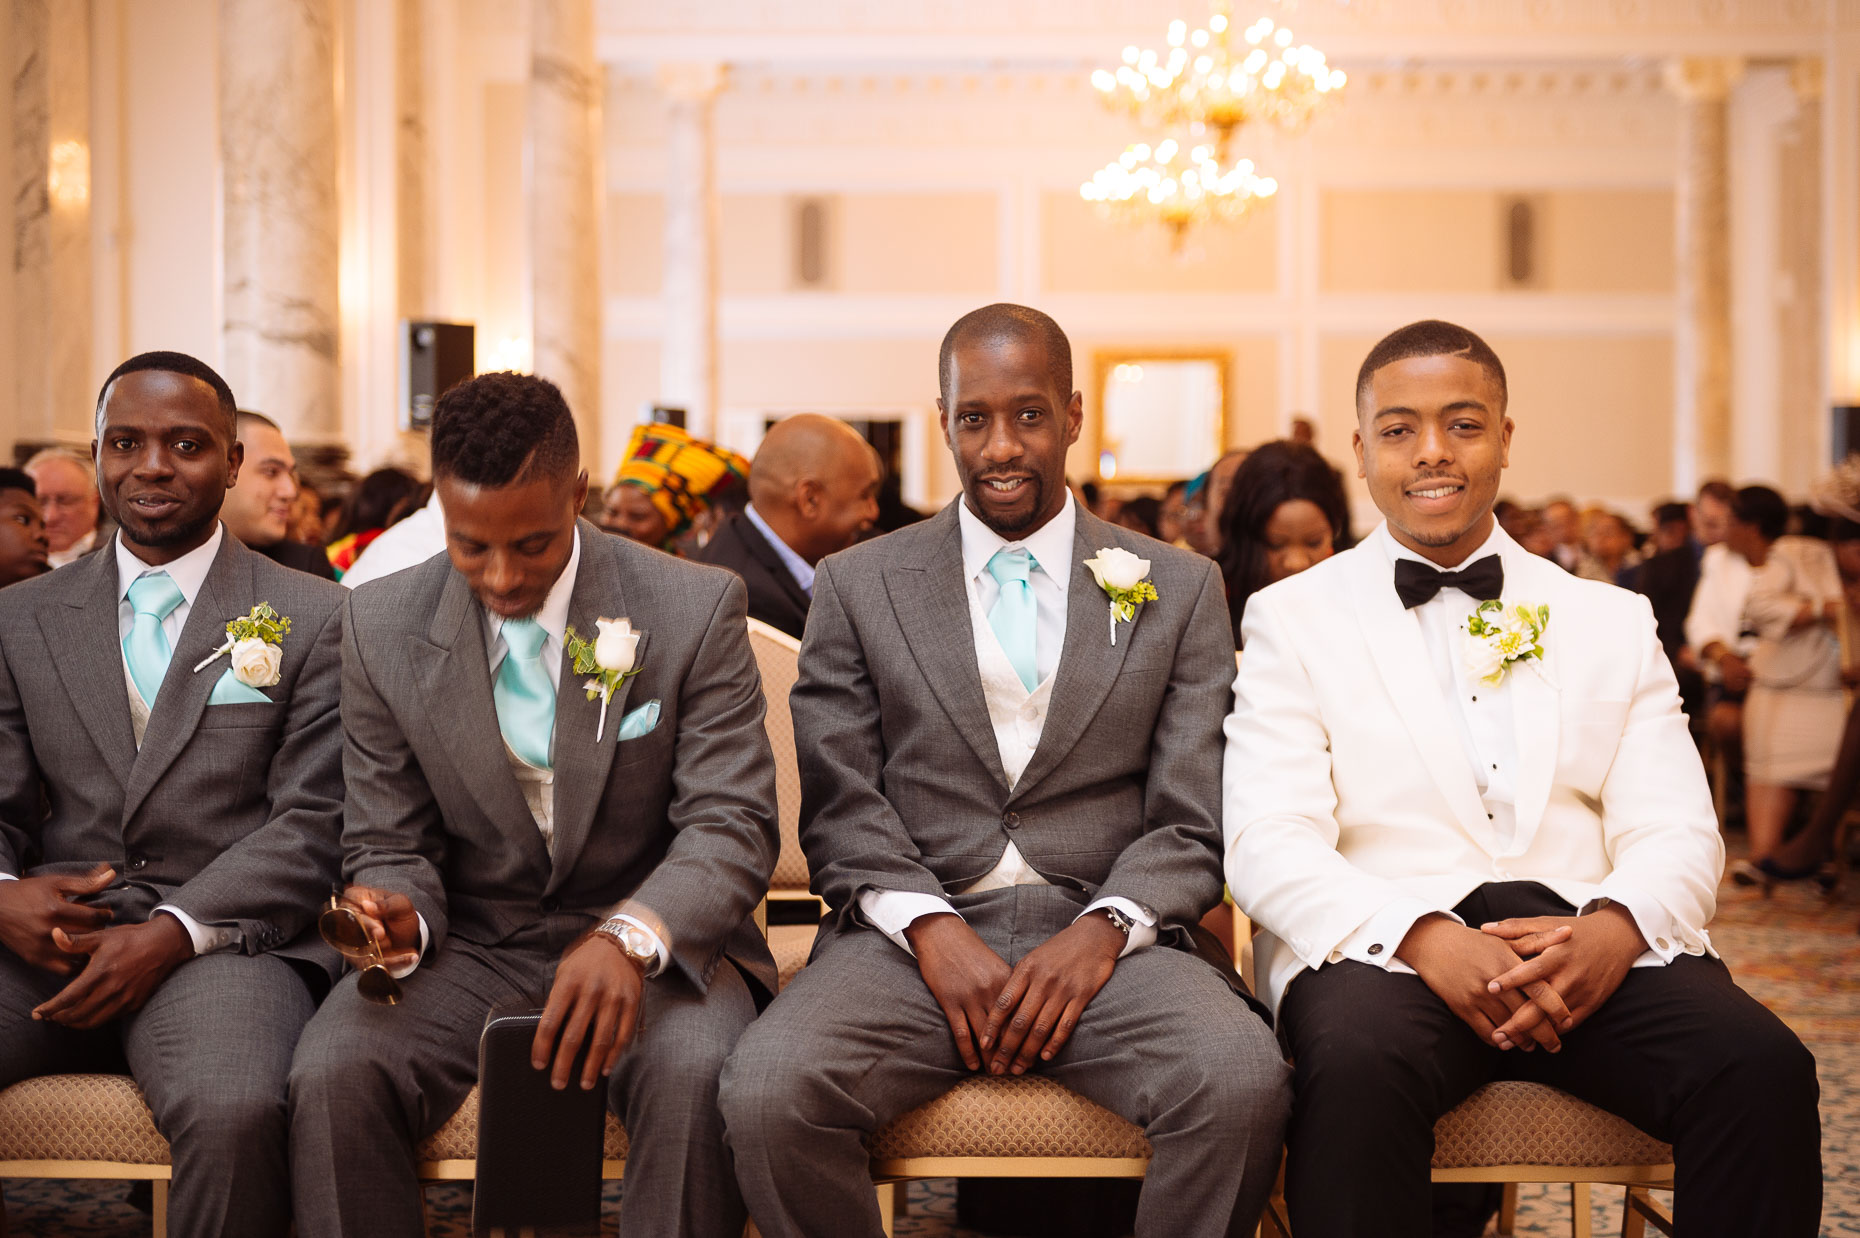 groom-ushers-men-landmark-hotel-wedding-ceremony-09